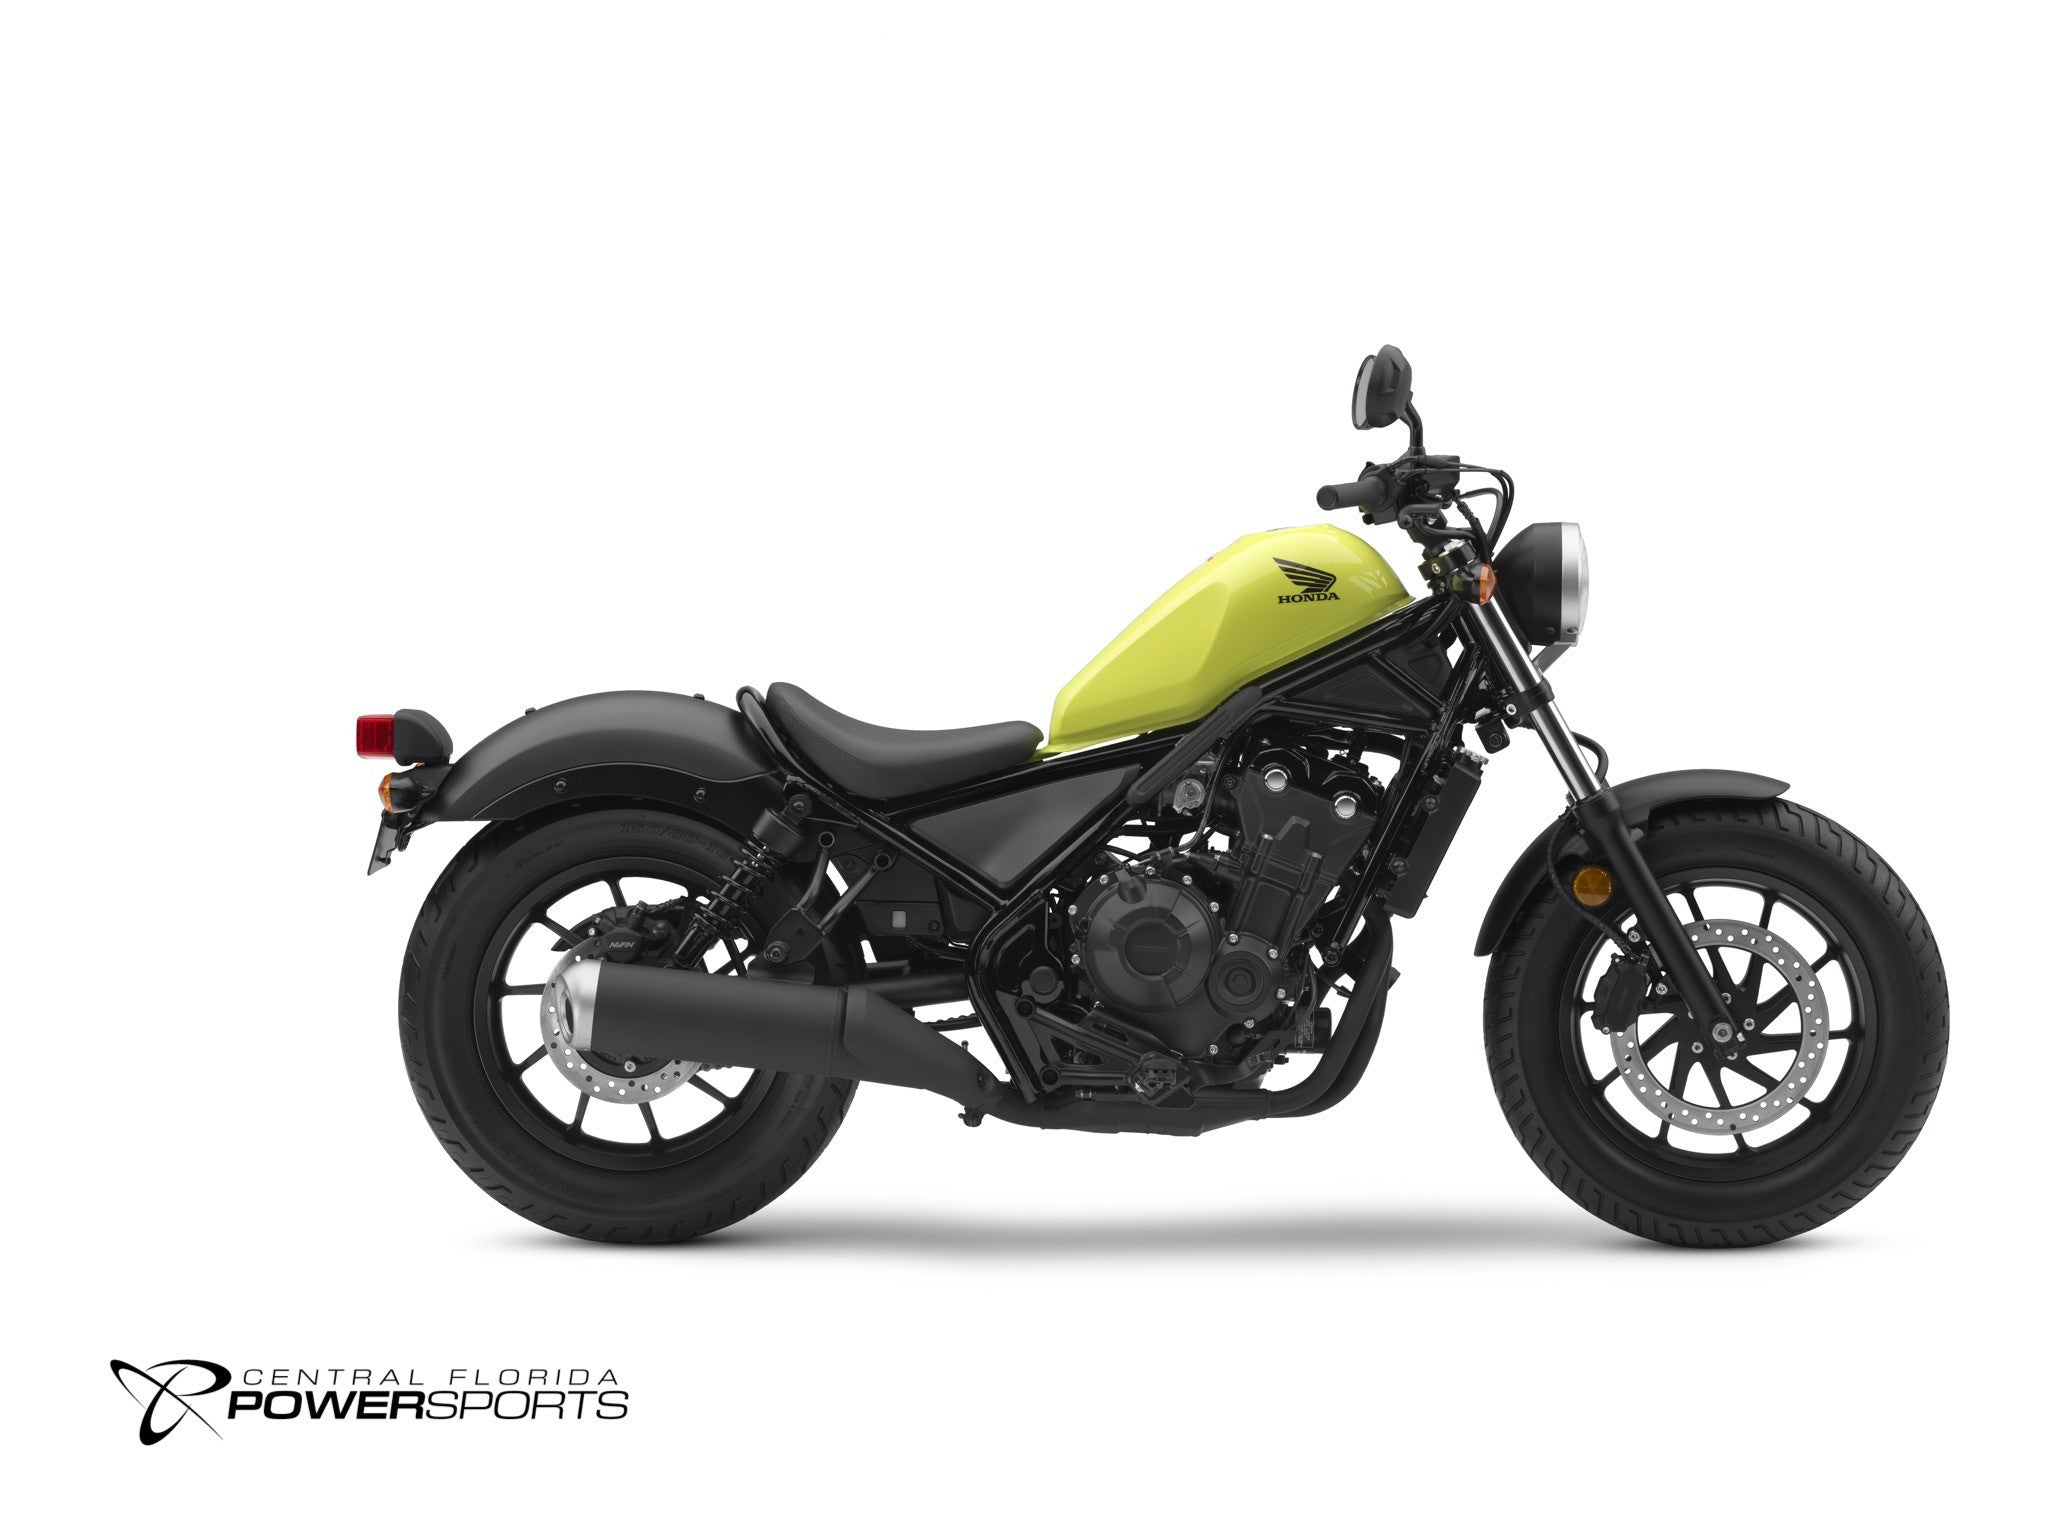 2017 honda rebel 500 motorcycle for sale-kissimmee - central